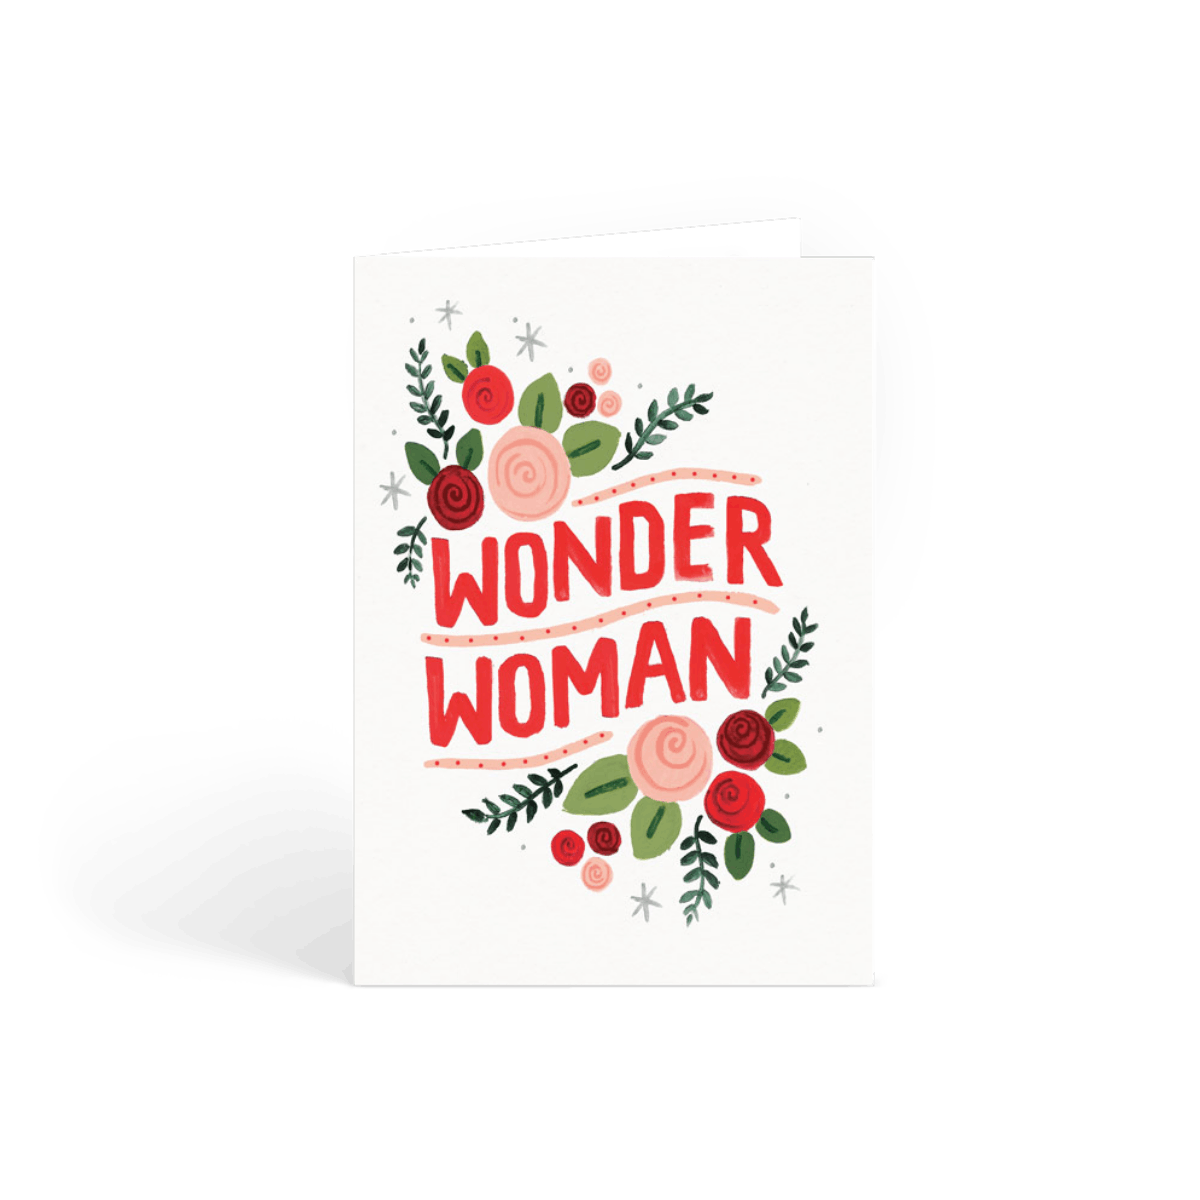 Https%3a%2f%2fwww.papier.com%2fproduct image%2f62058%2f2%2fwonder woman 14720 front 1547825711.png?ixlib=rb 1.1